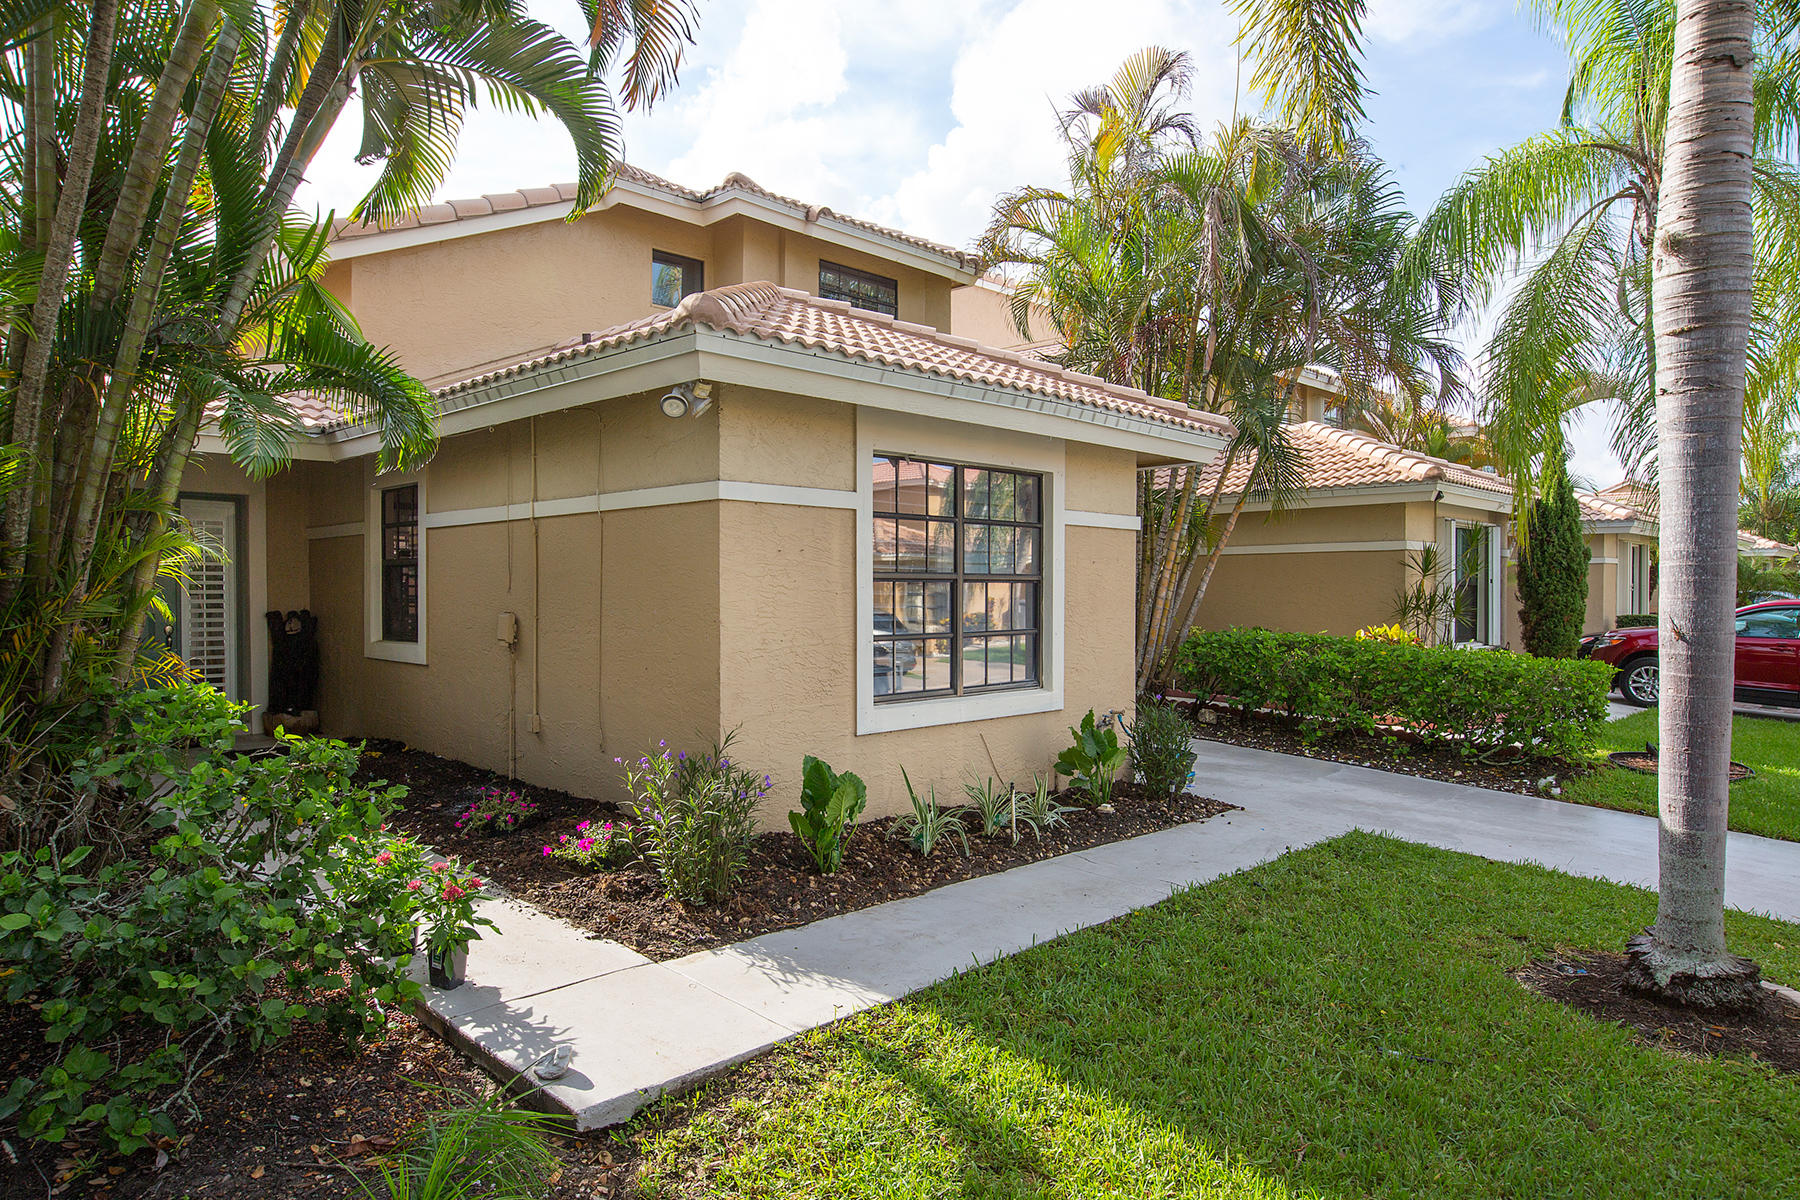 Home for sale in Country Fair Boynton Beach Florida